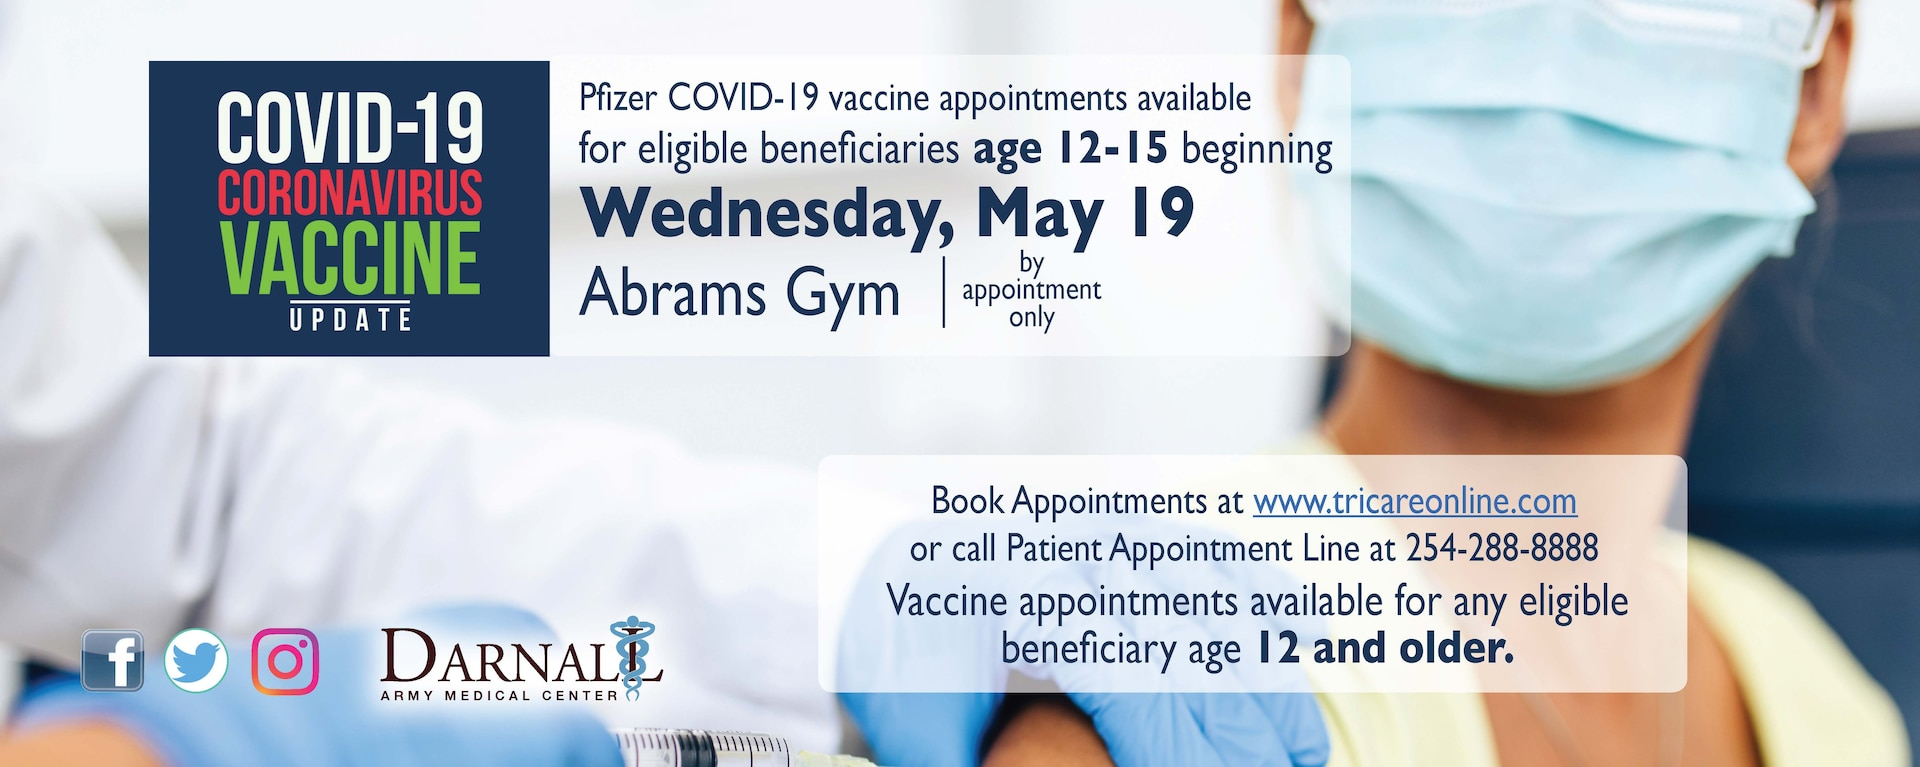 CRDAMC opens COVID-19 vaccine appointments to 12 -15 year olds.